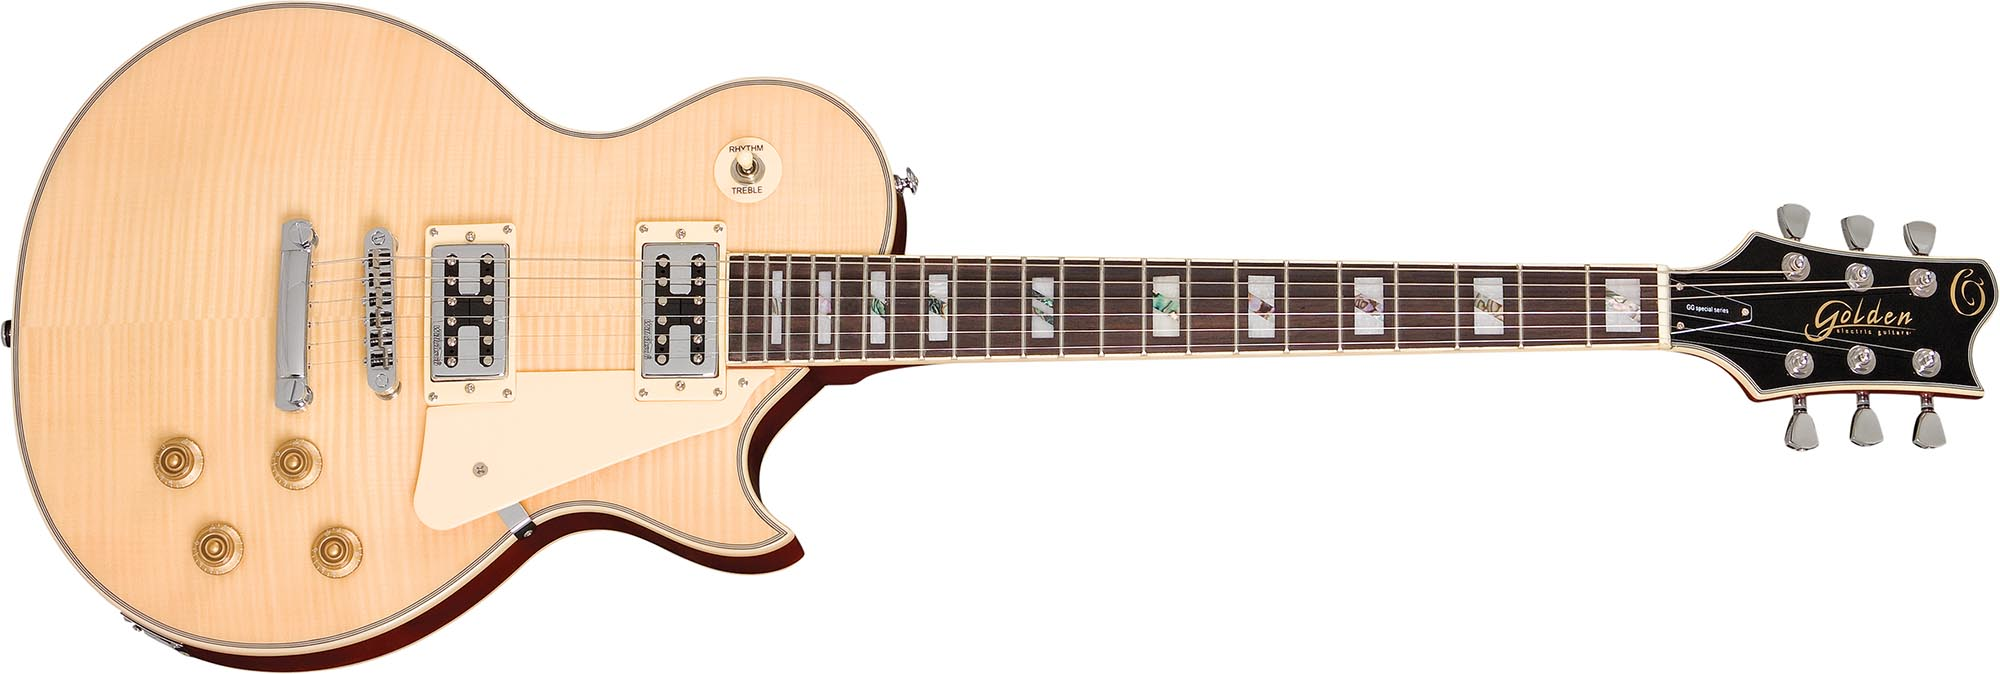 ggs500c guitarra lespaul tampo maple golden ggs500c visao frontal